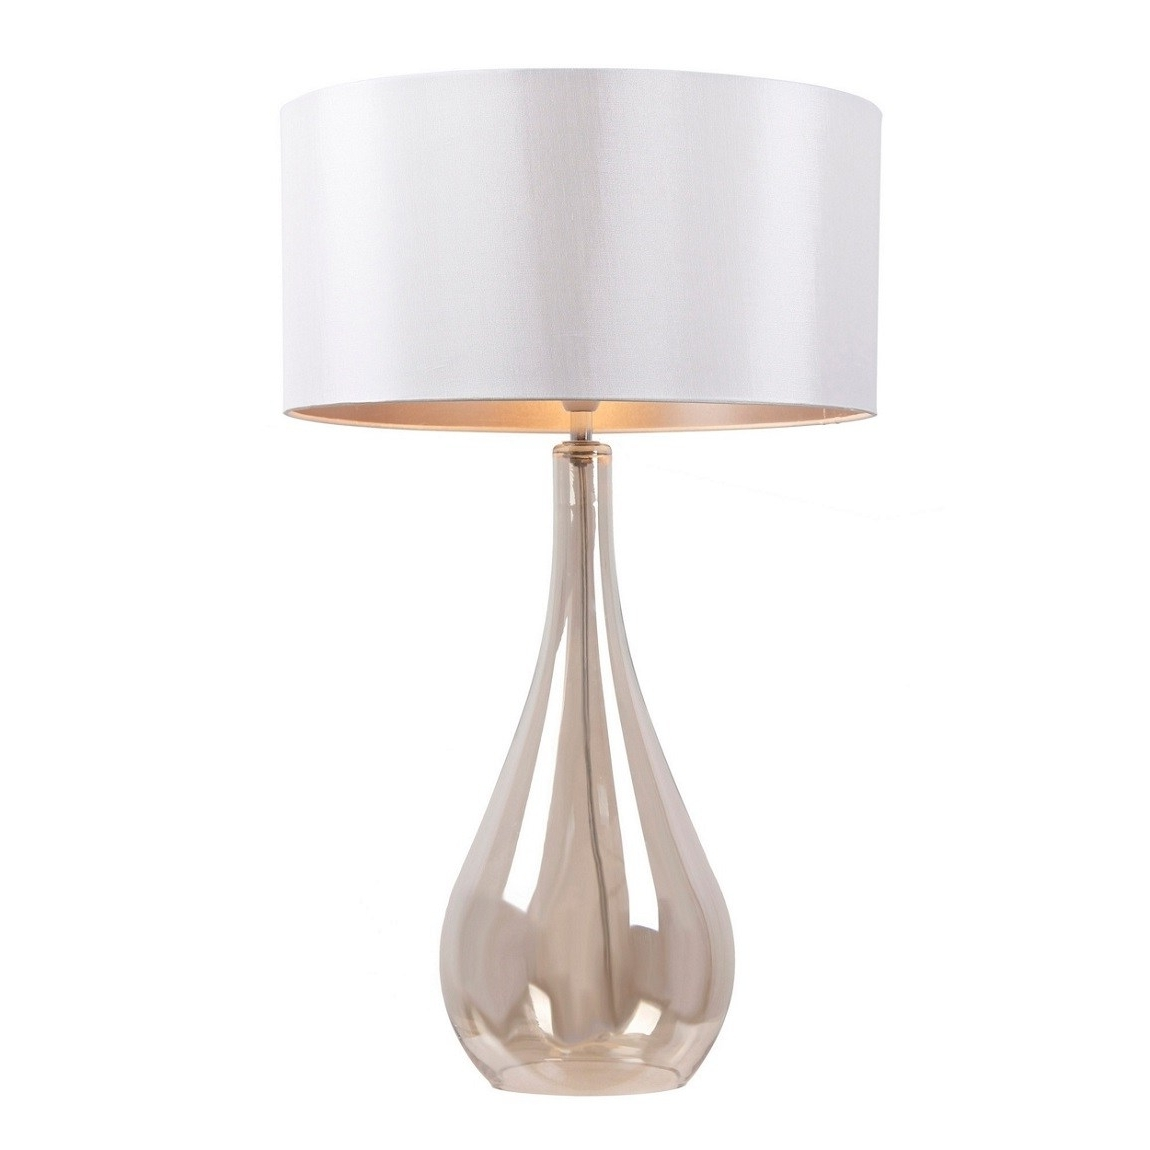 Debenhams Table Lamps For Living Room Regarding Most Recently Released Irresistible Bedroom Uk Tall Table Lamps Canada Sentinel Debenhams (View 5 of 15)